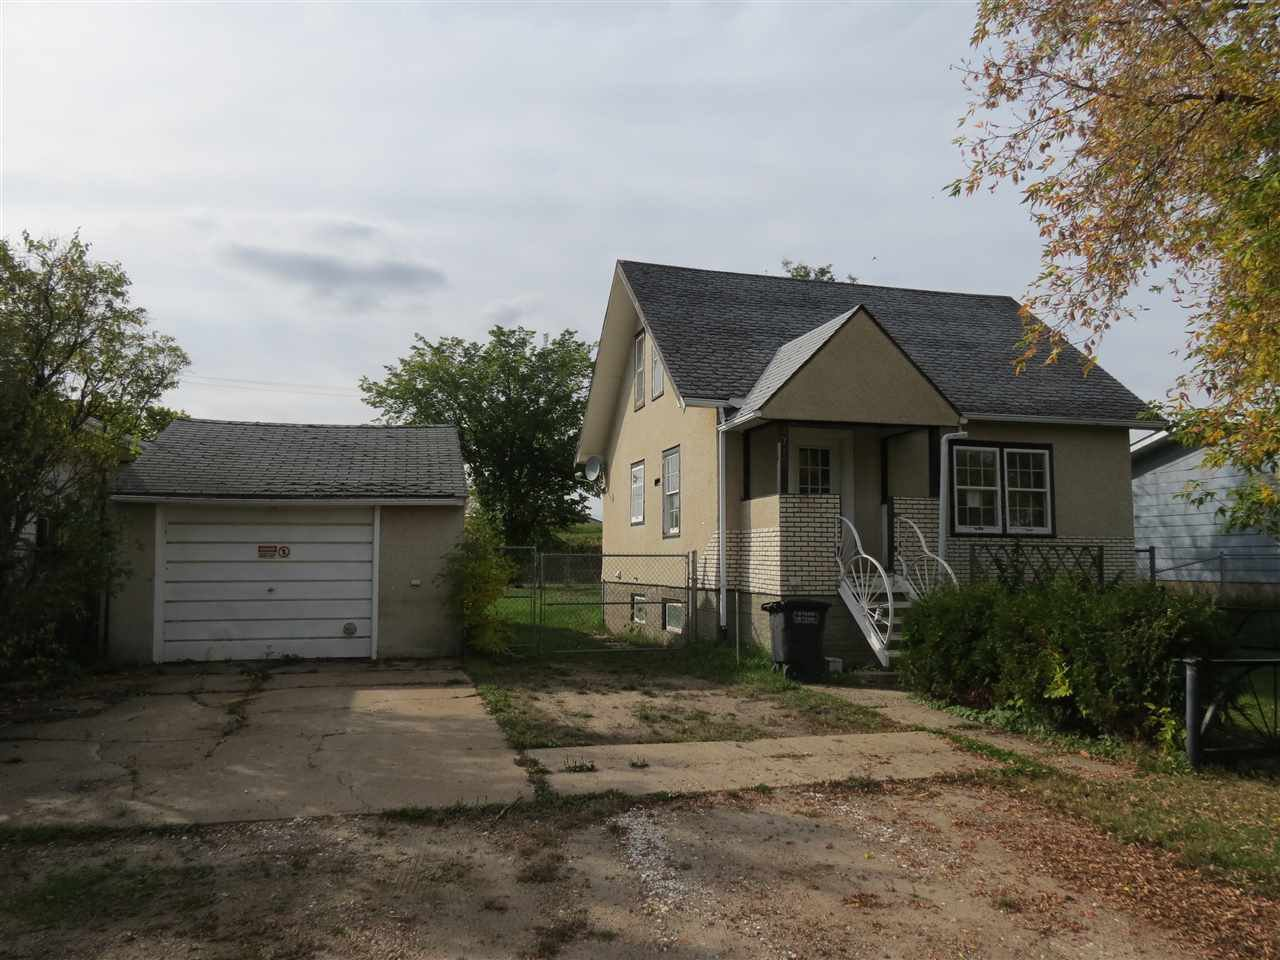 Main Photo: 4712 49 Street: Redwater House for sale : MLS®# E4173774